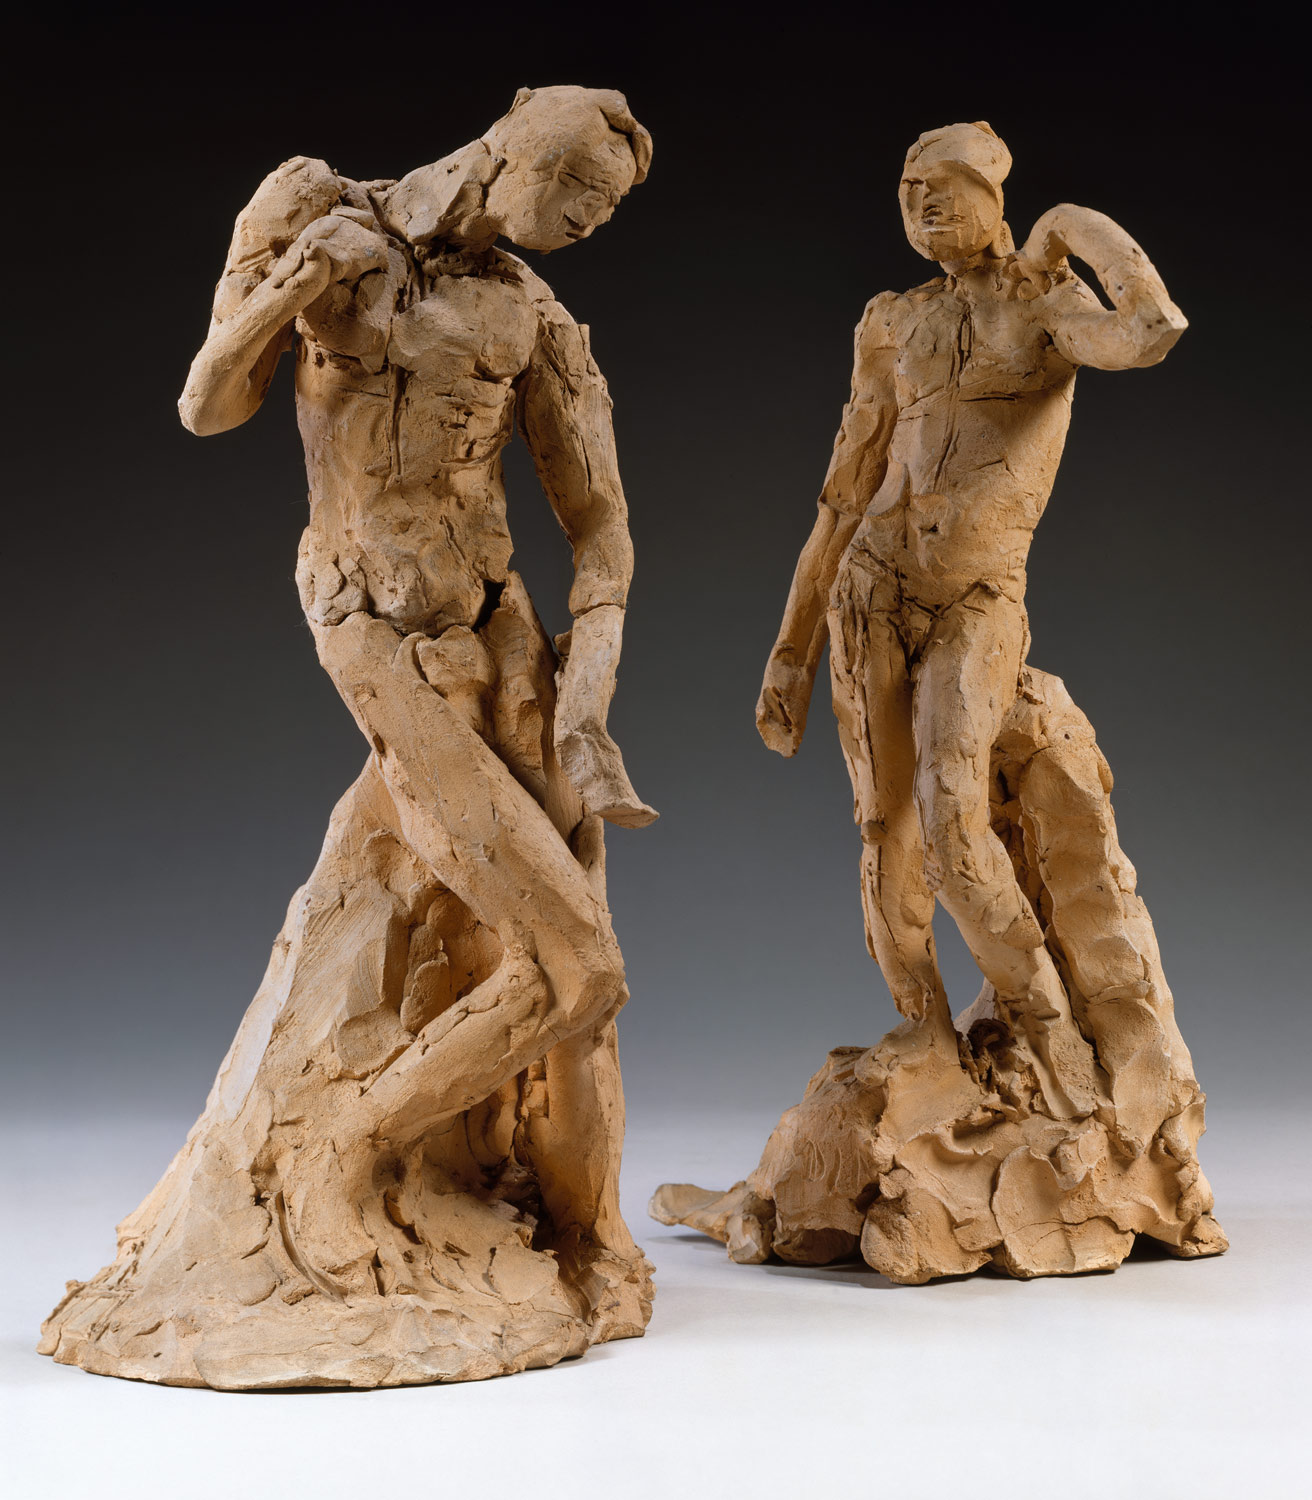 Pair of Standing Nude Male Figures Demonstrating the Principles of Contrapposto According to Michelangelo and Phidias